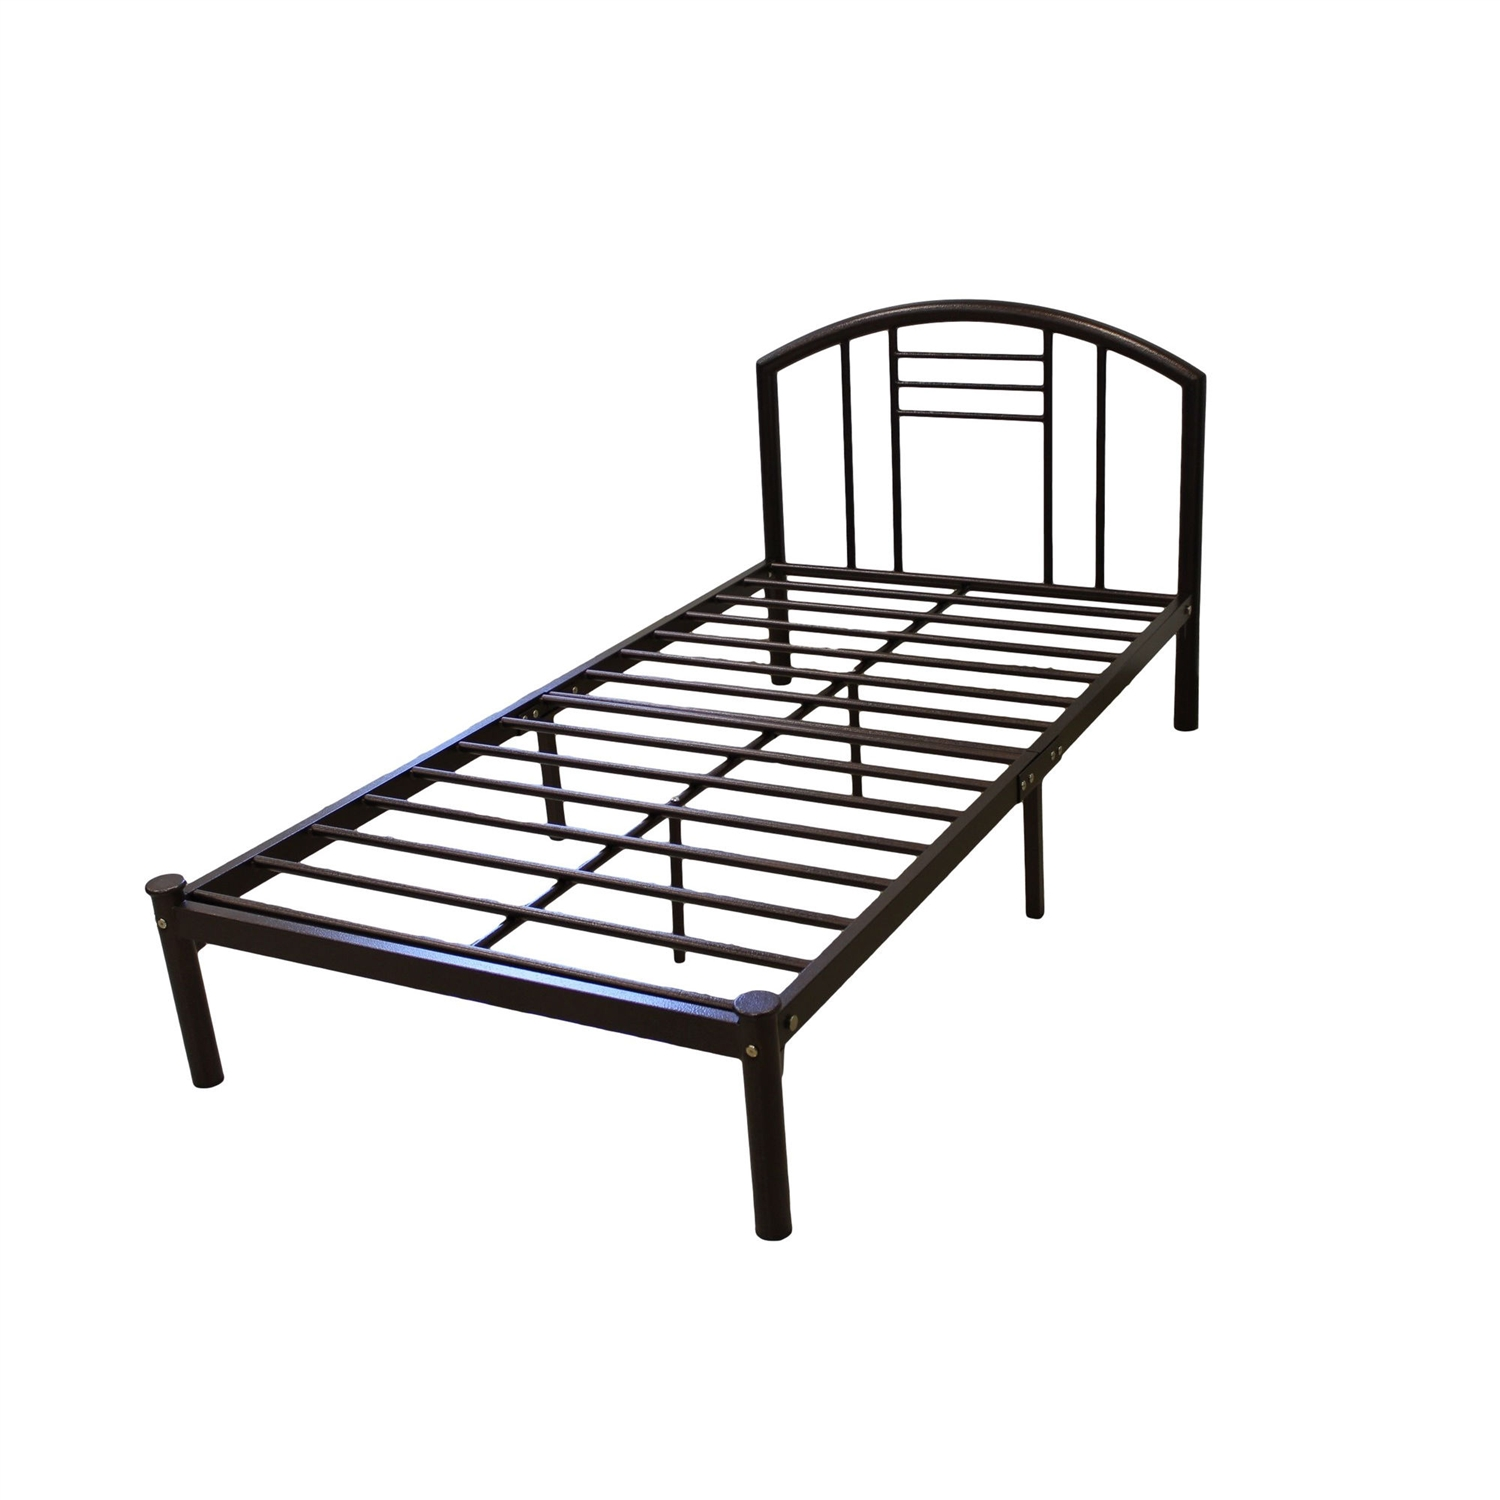 Full size Metal Platform Bed Frame with Headboard in Bronze Finish